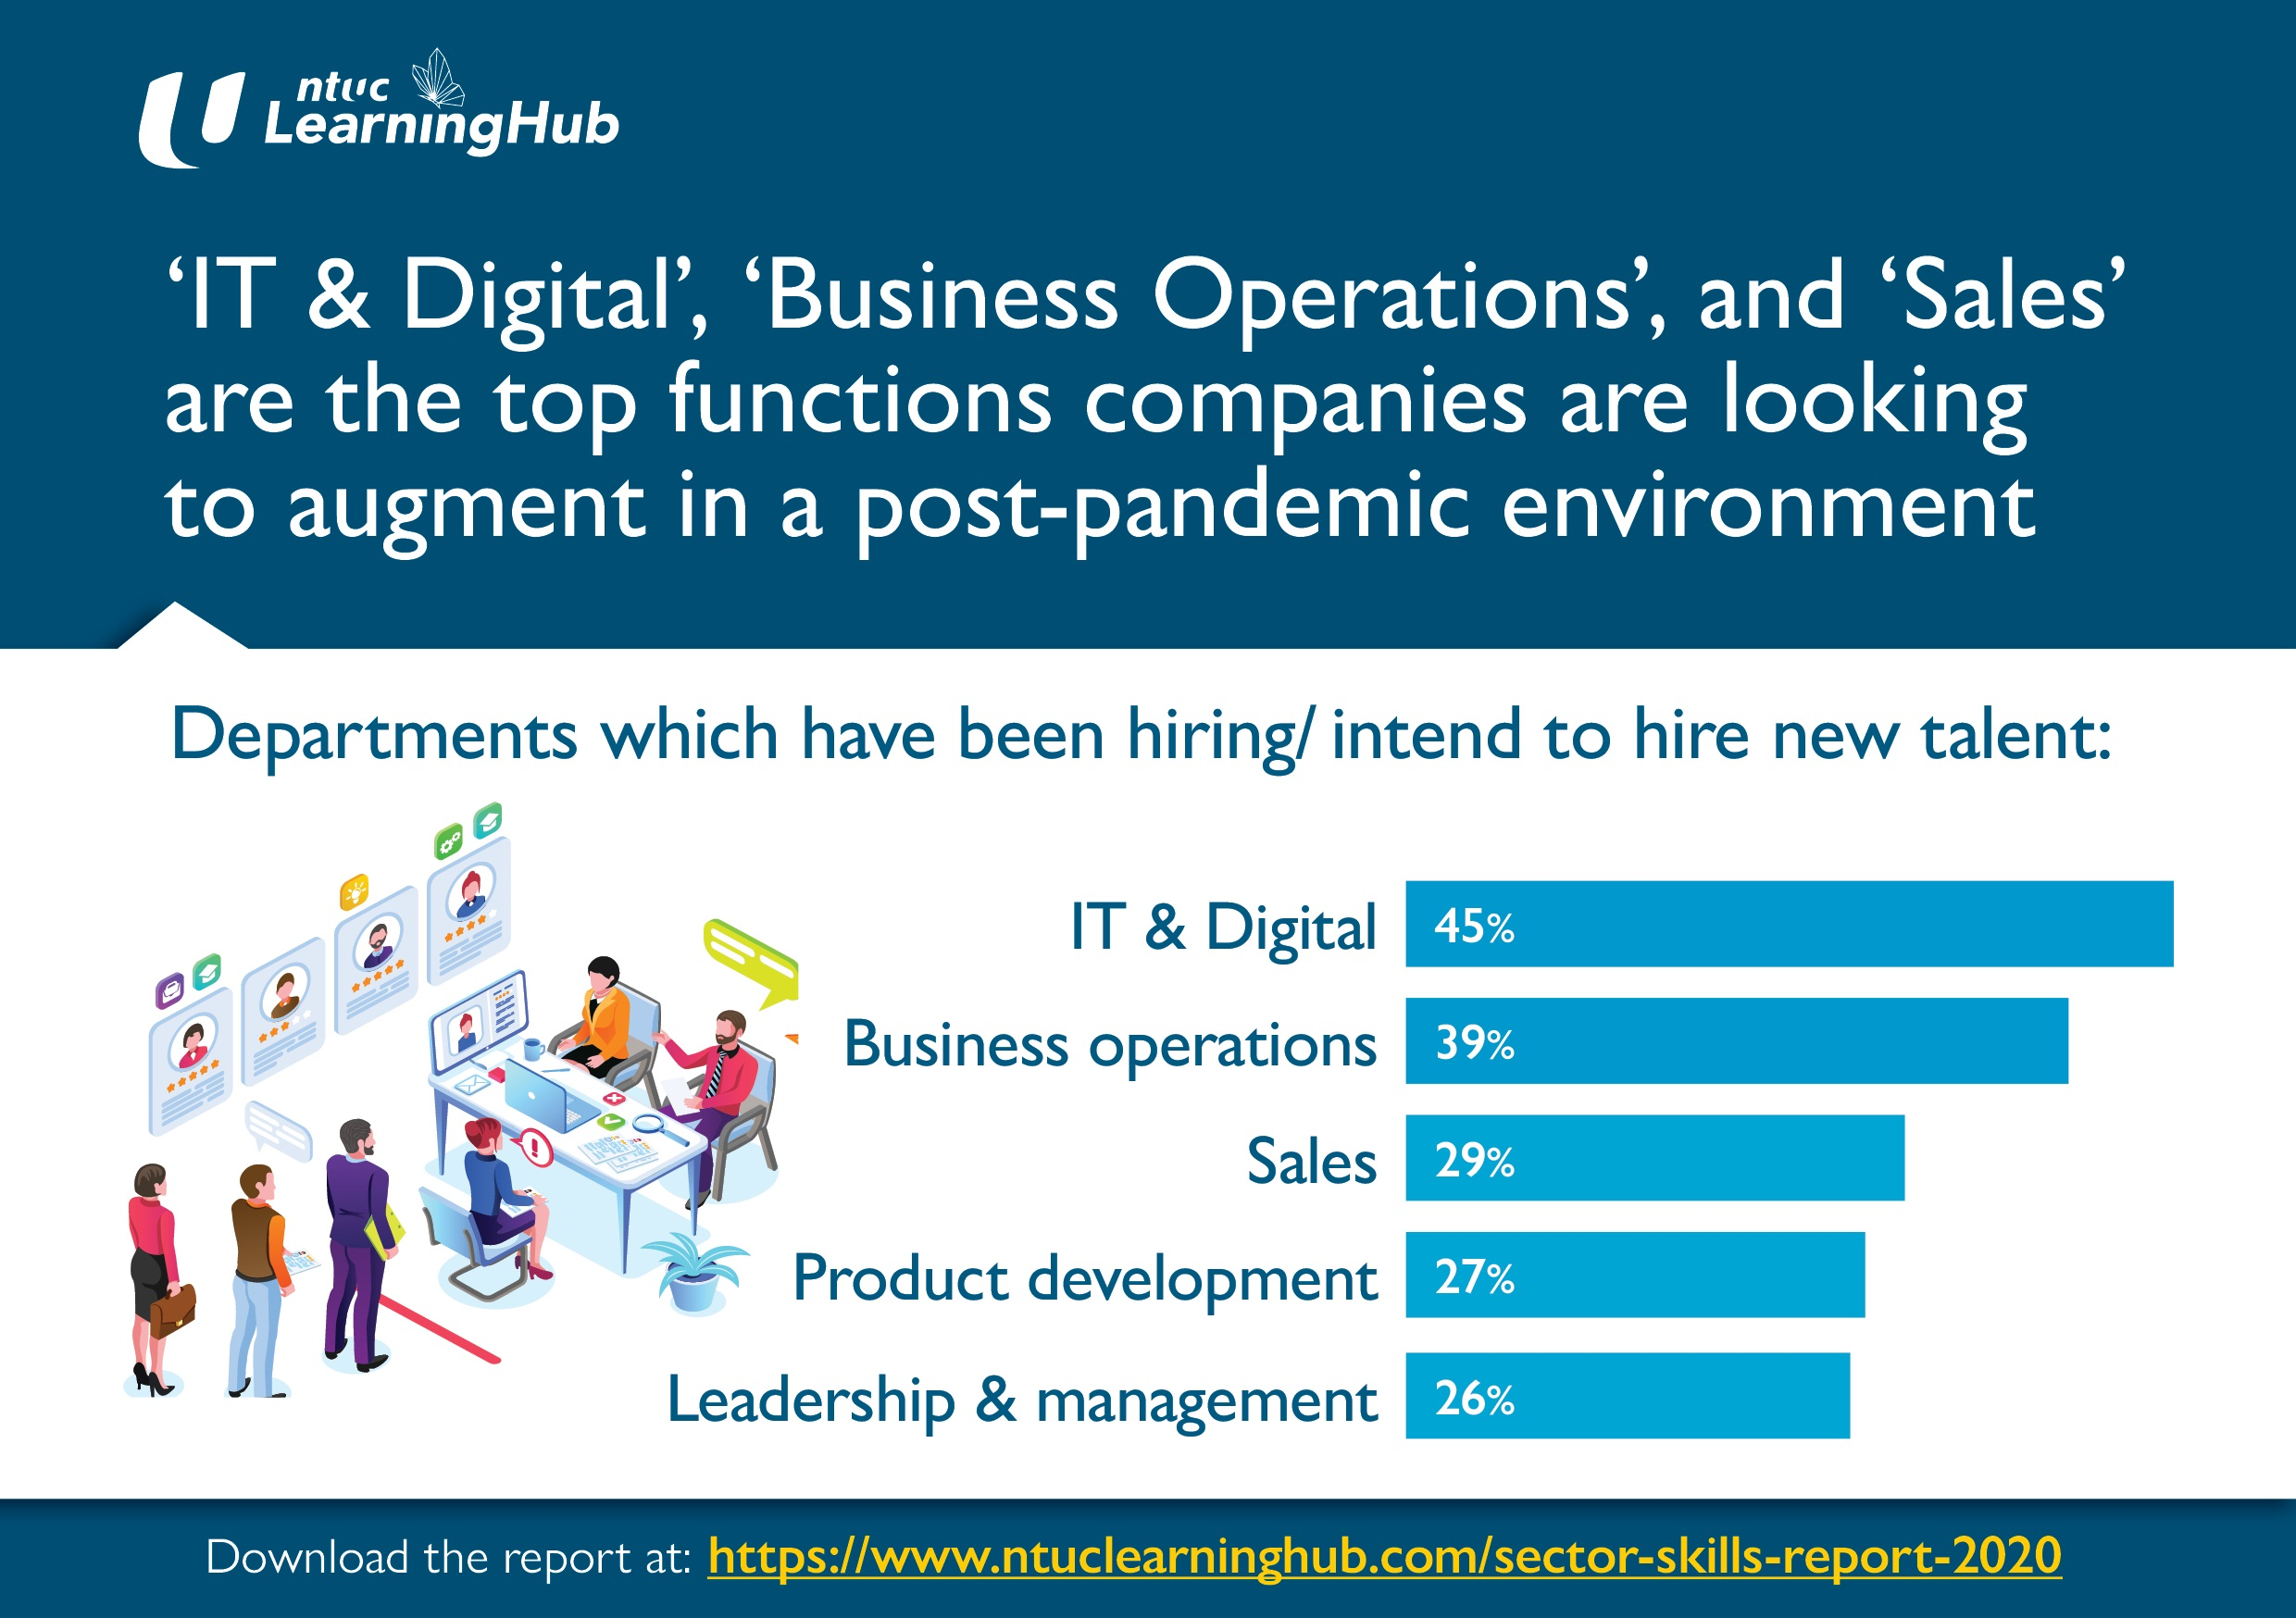 'IT Digital', 'Business Operations', and 'Sales' Are The Top Functions Companies Are Looking to Augment in a Post-Pandemic Environment